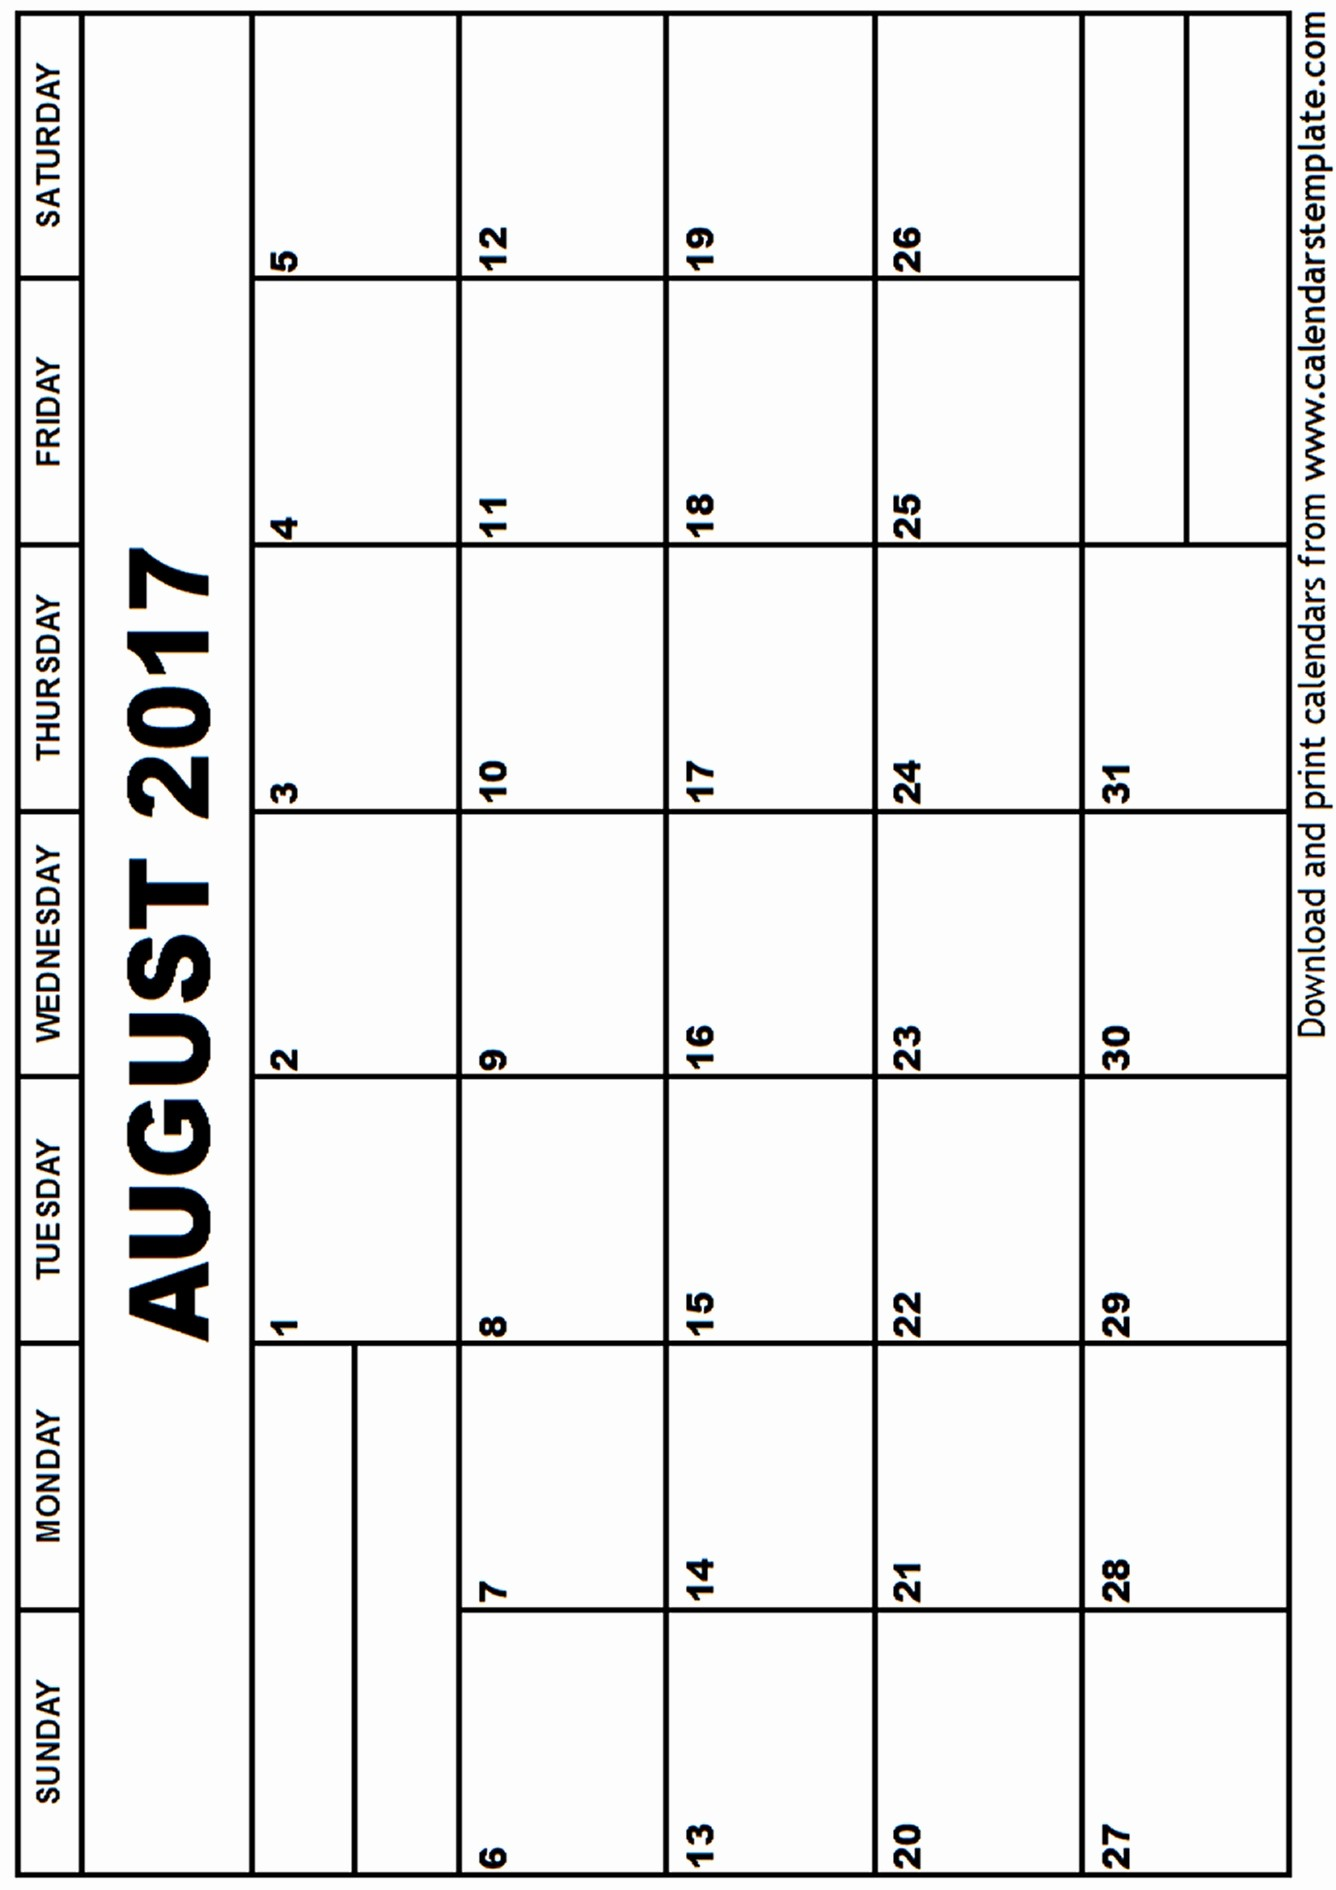 Blank Calendar Template August 2017 Luxury August 2017 Calendar Template